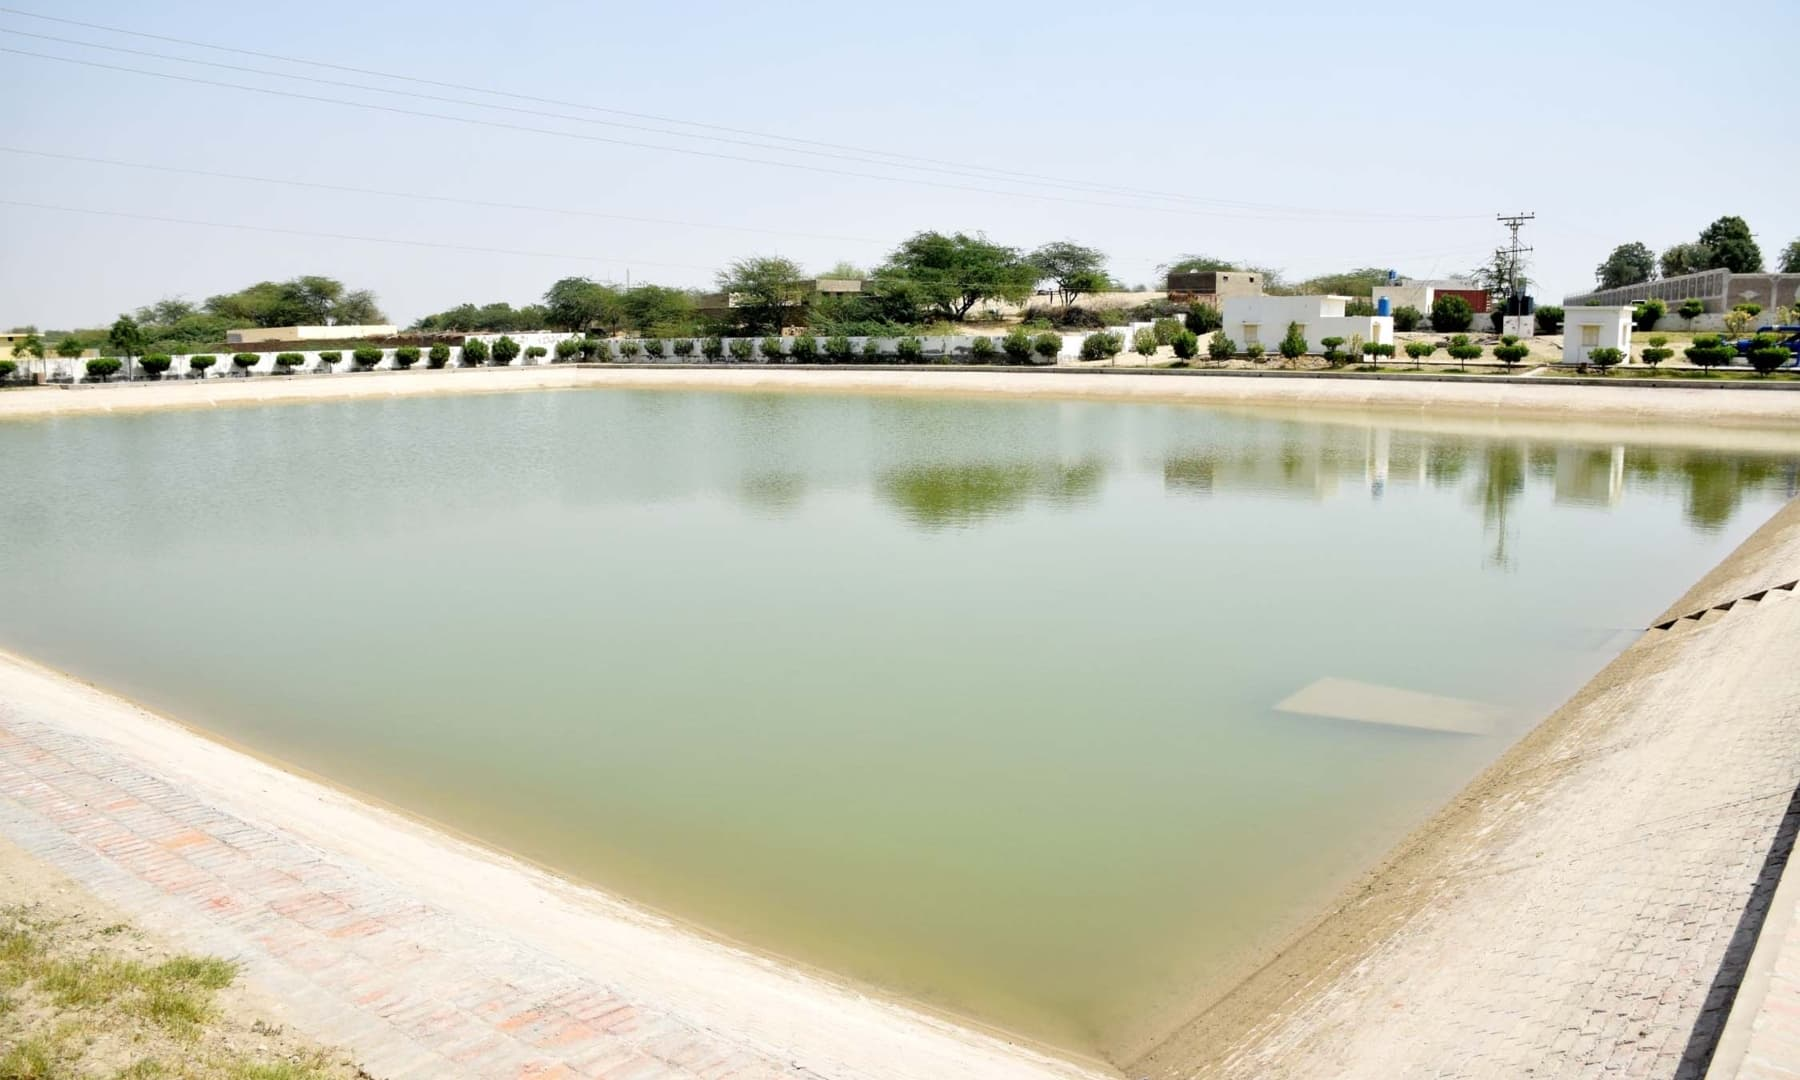 A reservoir of water for a water supply project in Achhro Thar, Khipro, Sindh. — Photo by Umair Ali